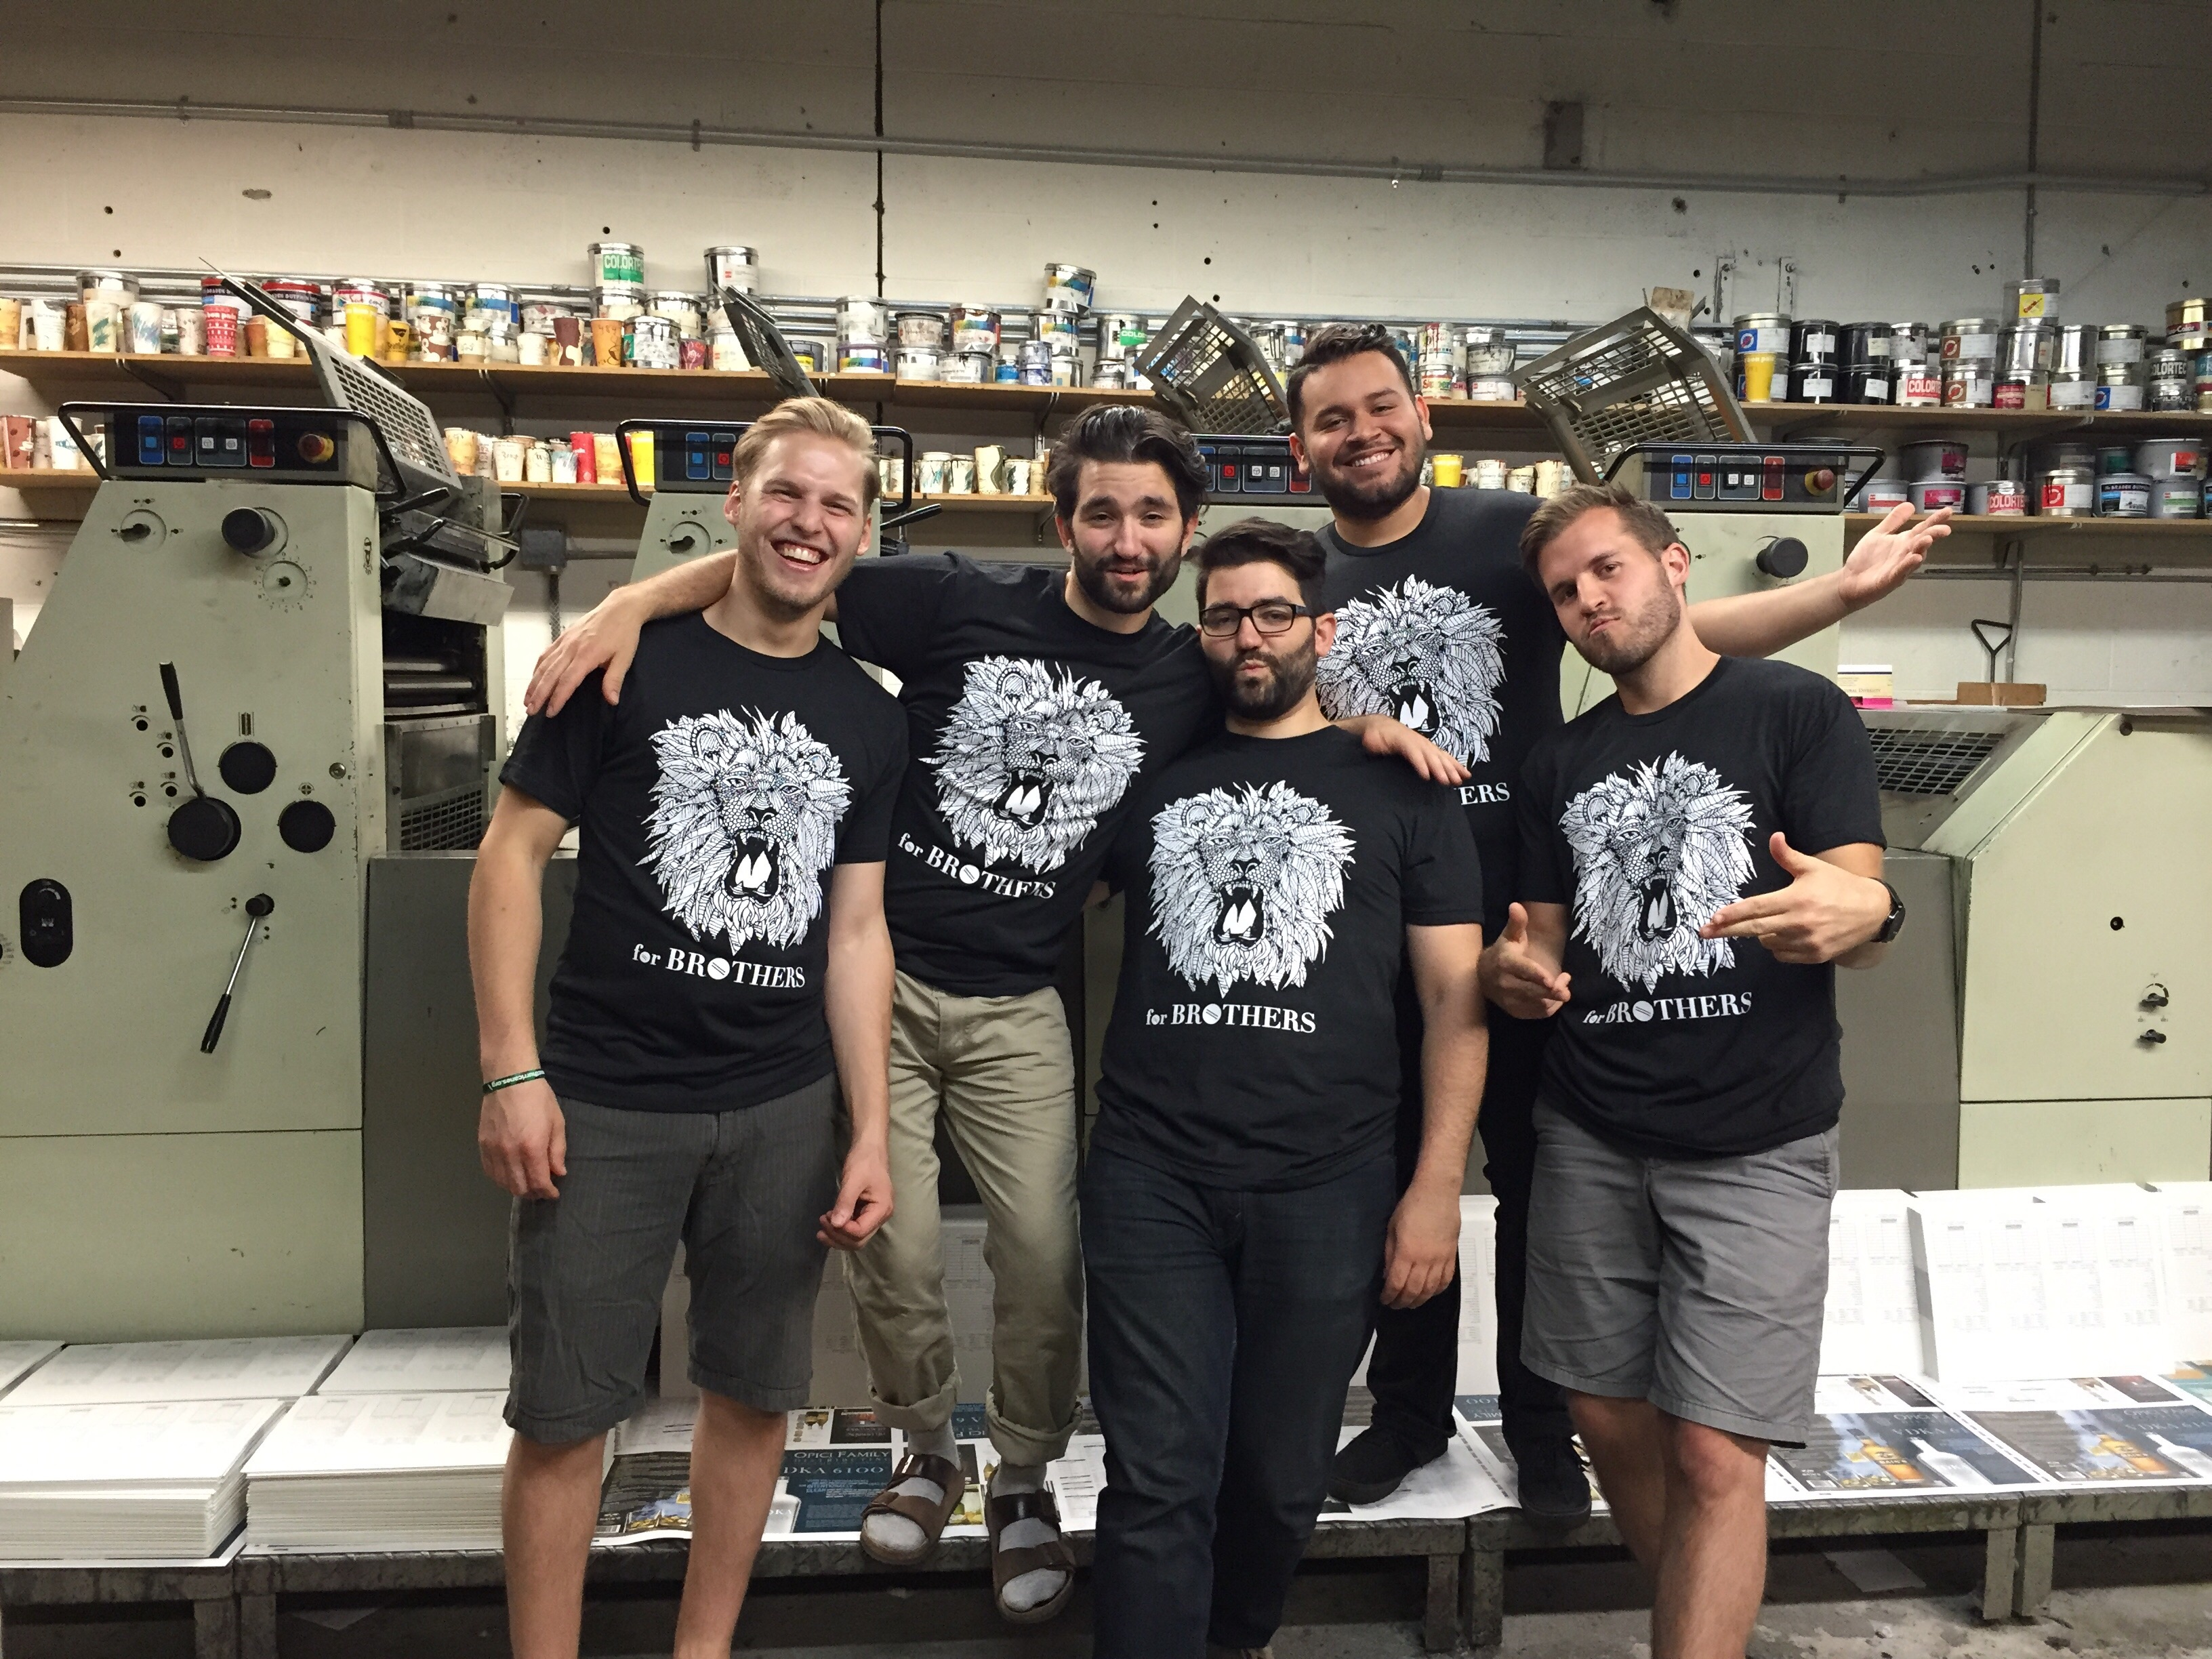 Custom T Shirts For For Brothers Lion T Shirts In A Print Shop